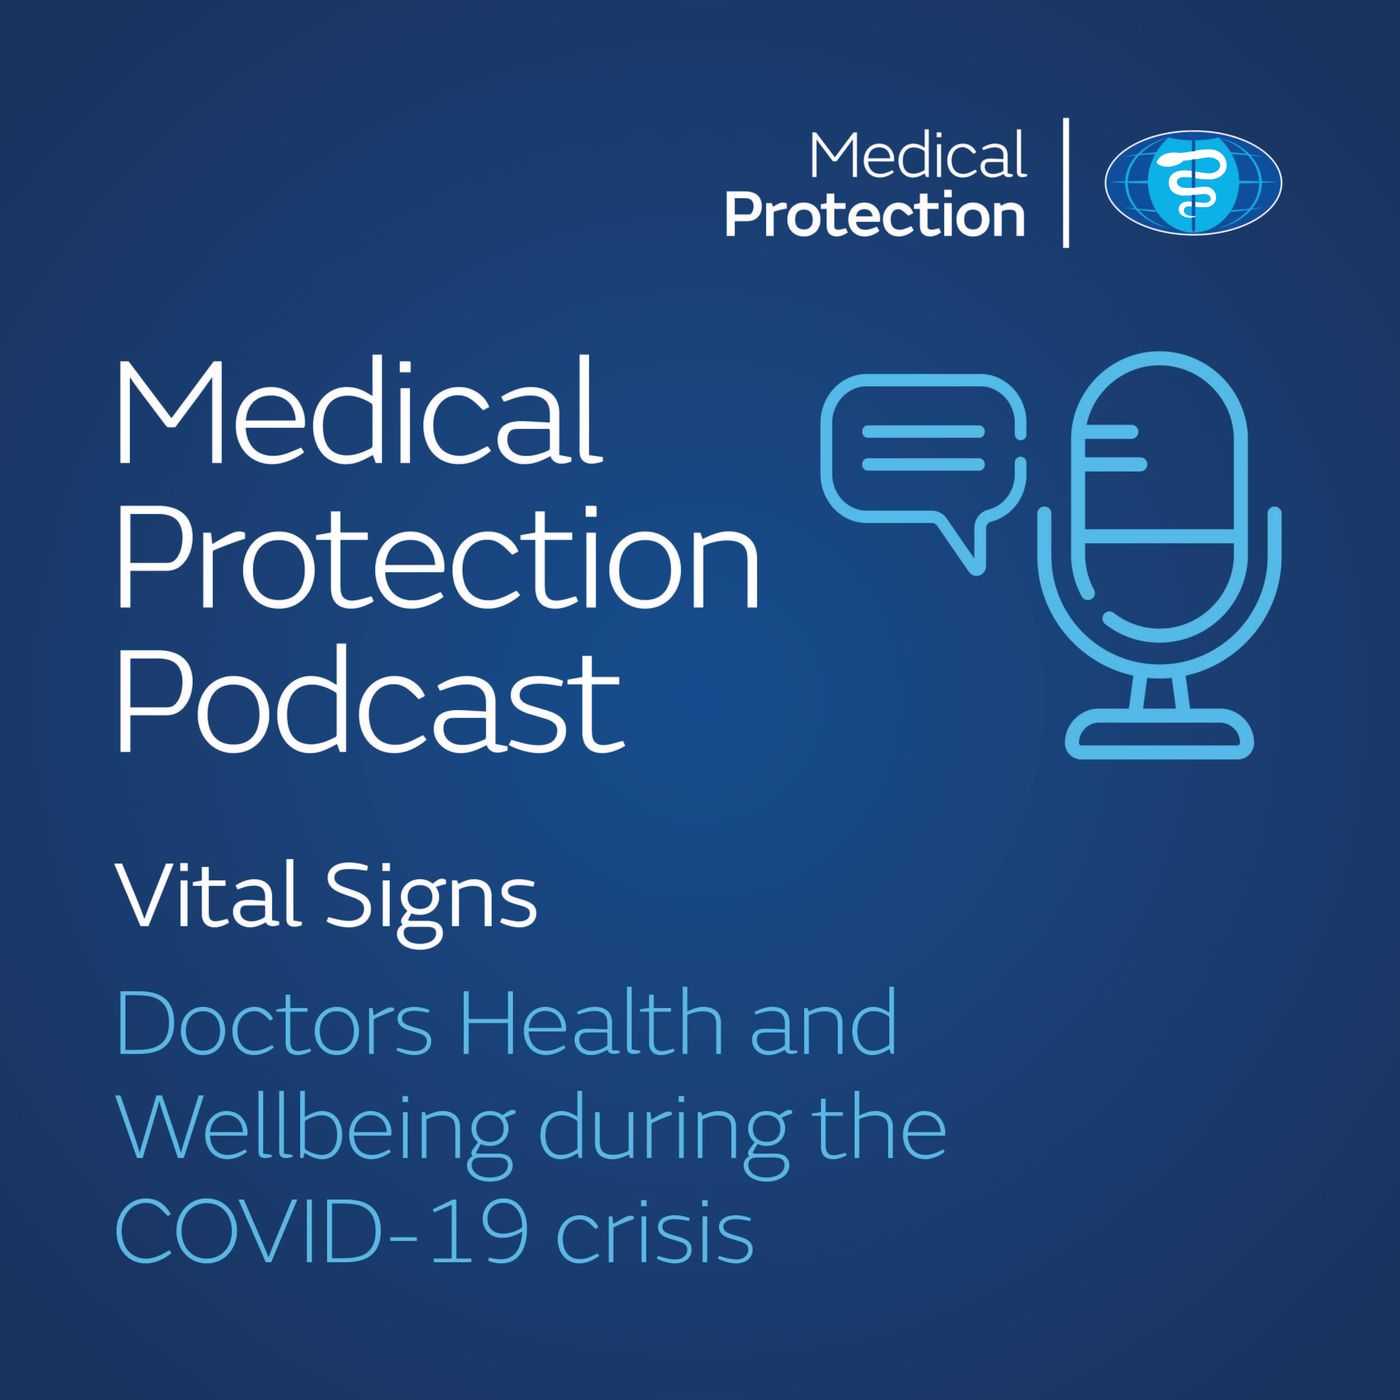 Doctors Health and Wellbeing during the COVID-19 crisis